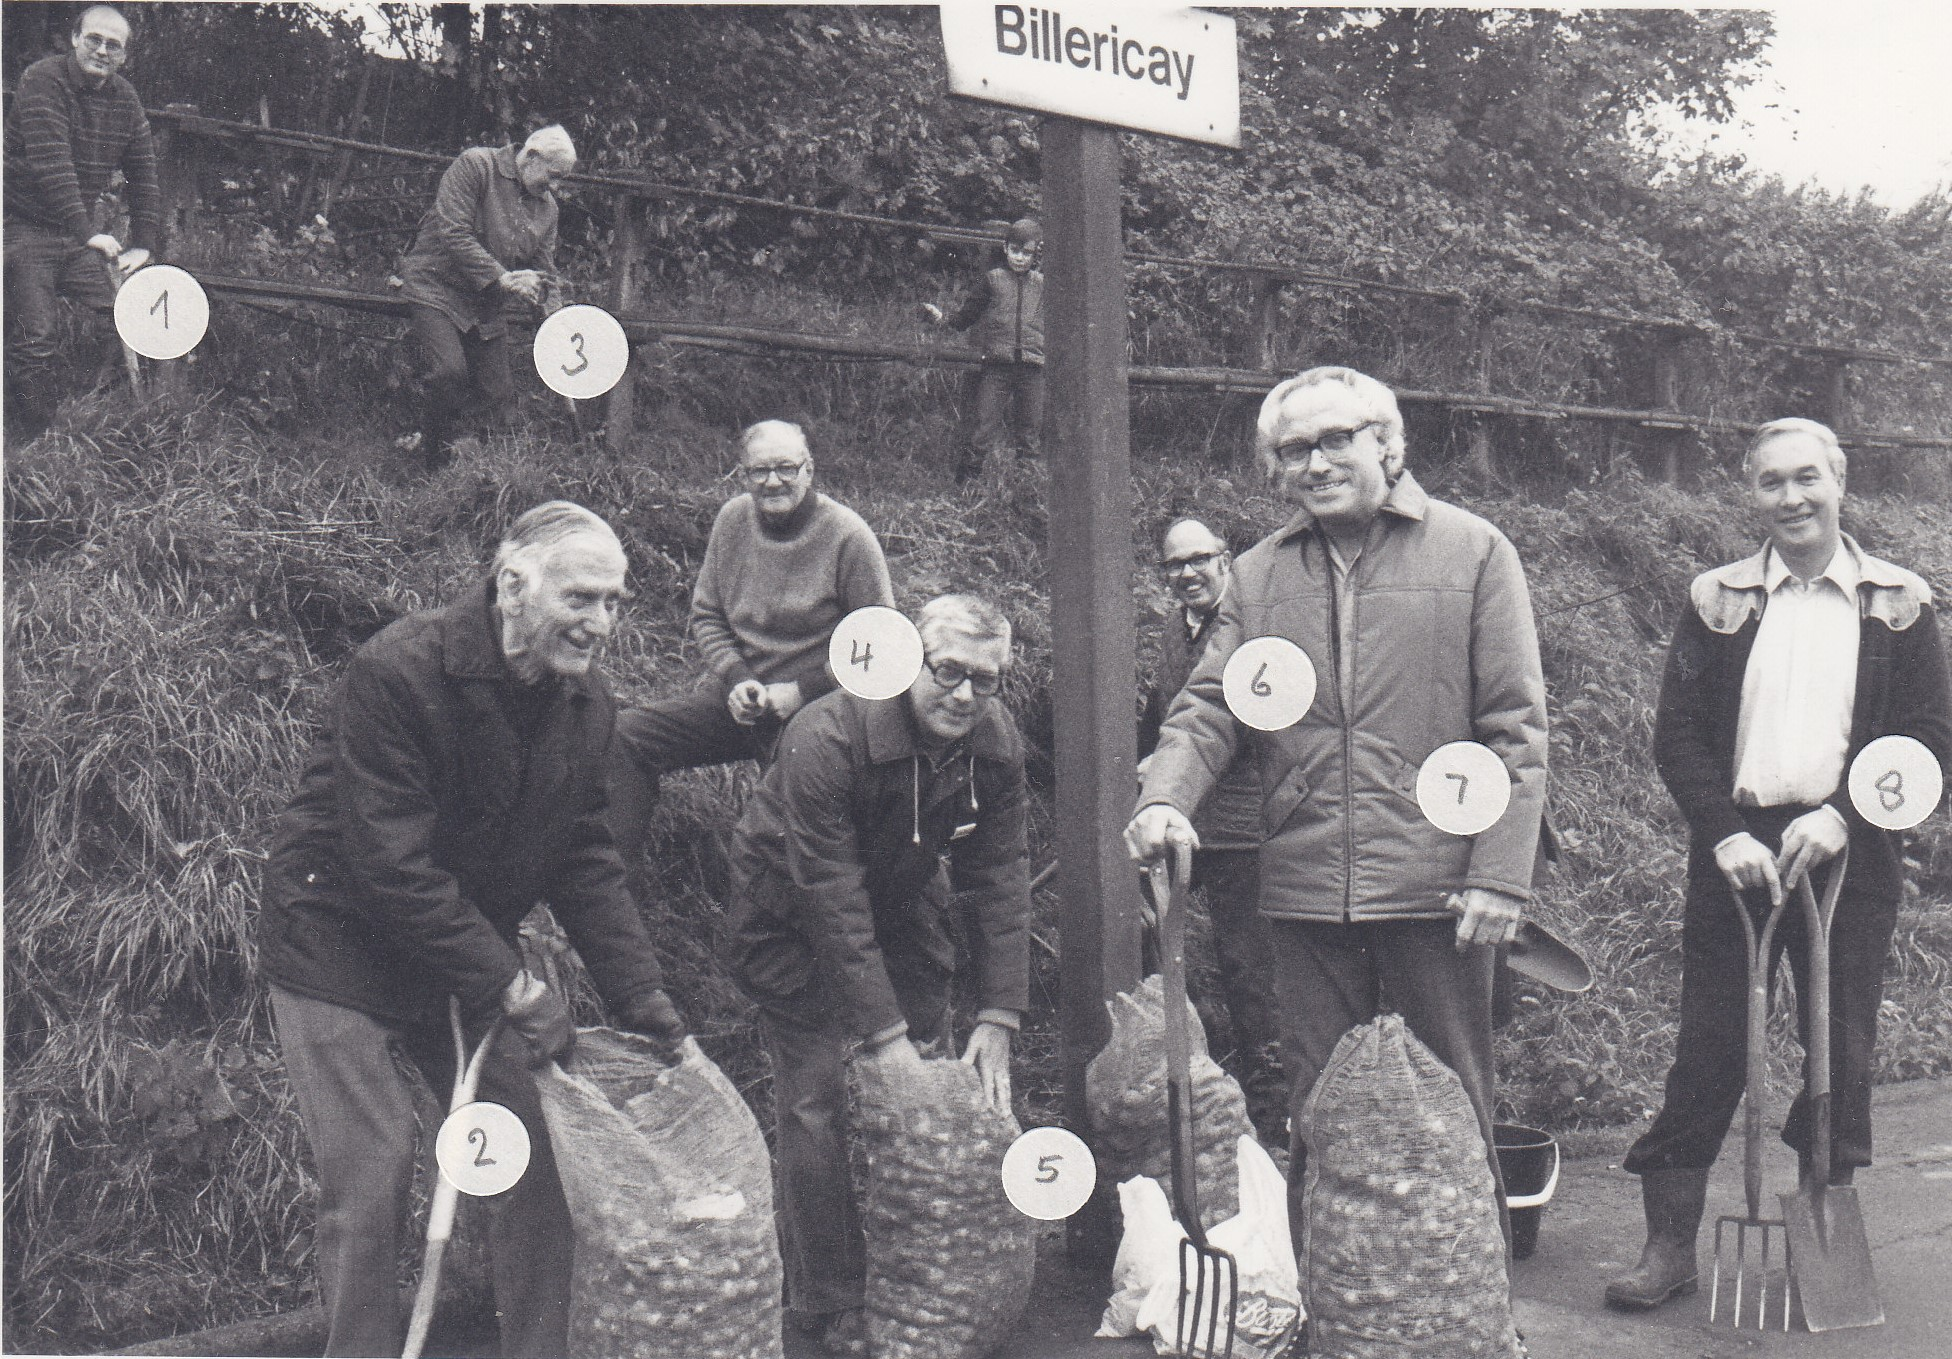 Members of Billericay Society planting bulbs